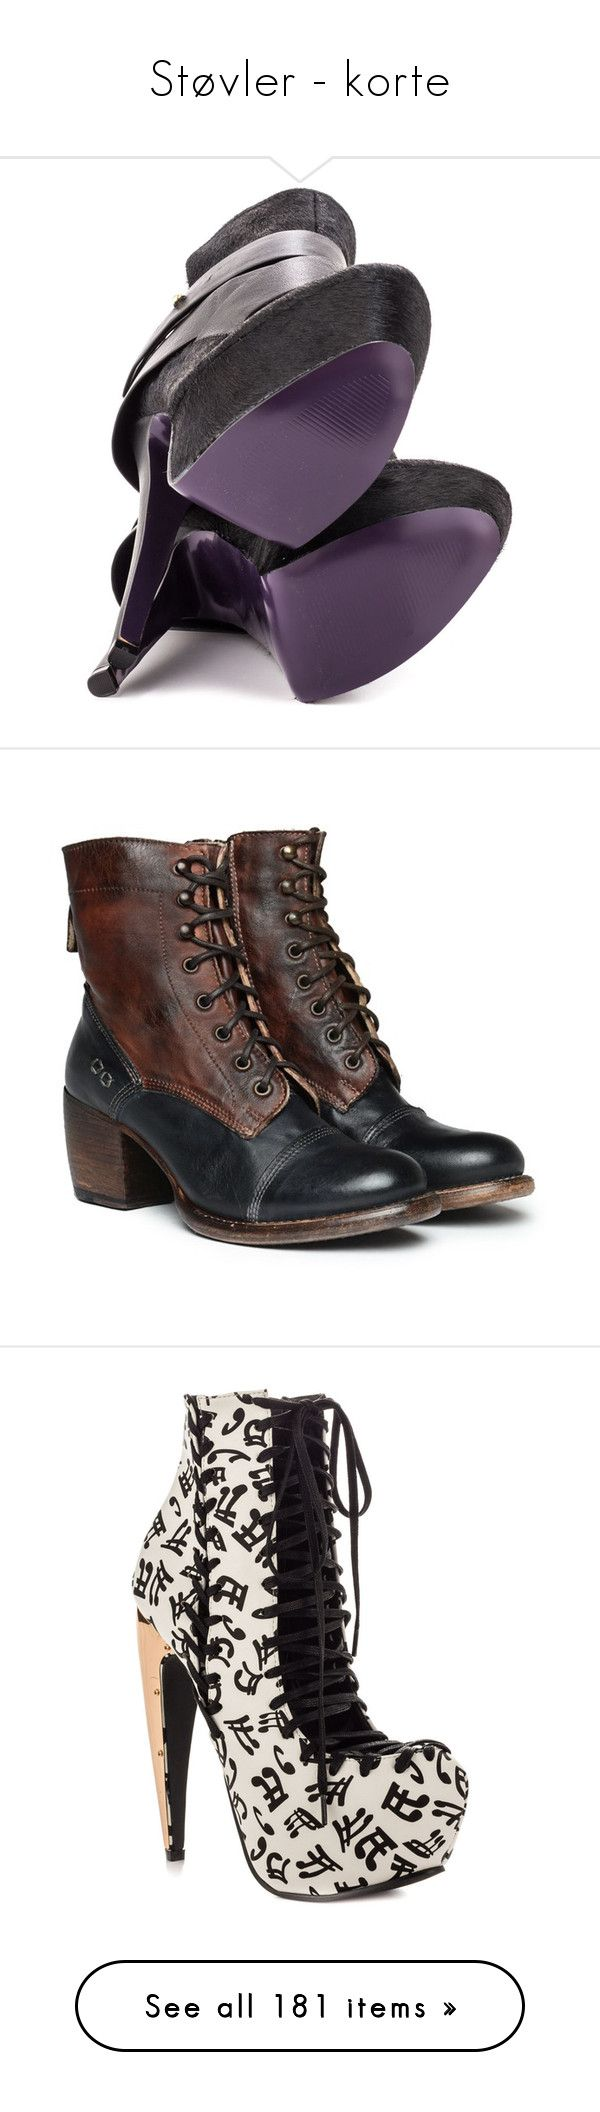 """""""Støvler - korte"""" by louvillia ❤ liked on Polyvore featuring shoes, boots, ankle booties, heels, platform booties, black stiletto booties, black heeled boots, black bootie, black ankle boots and laced ankle boots"""